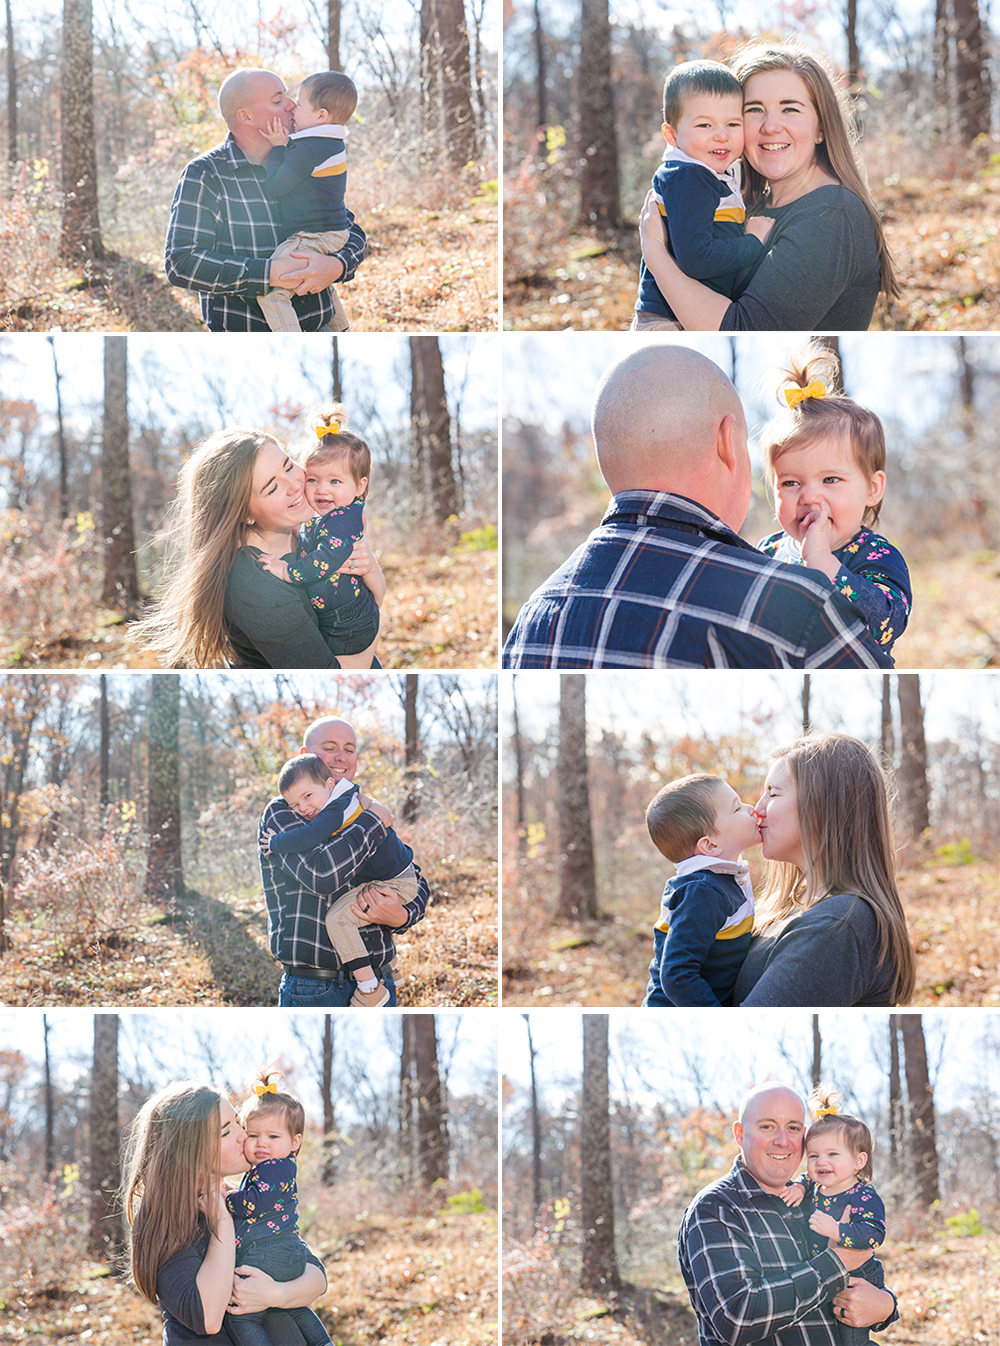 collage of photos of mom and dad with their son and daughter